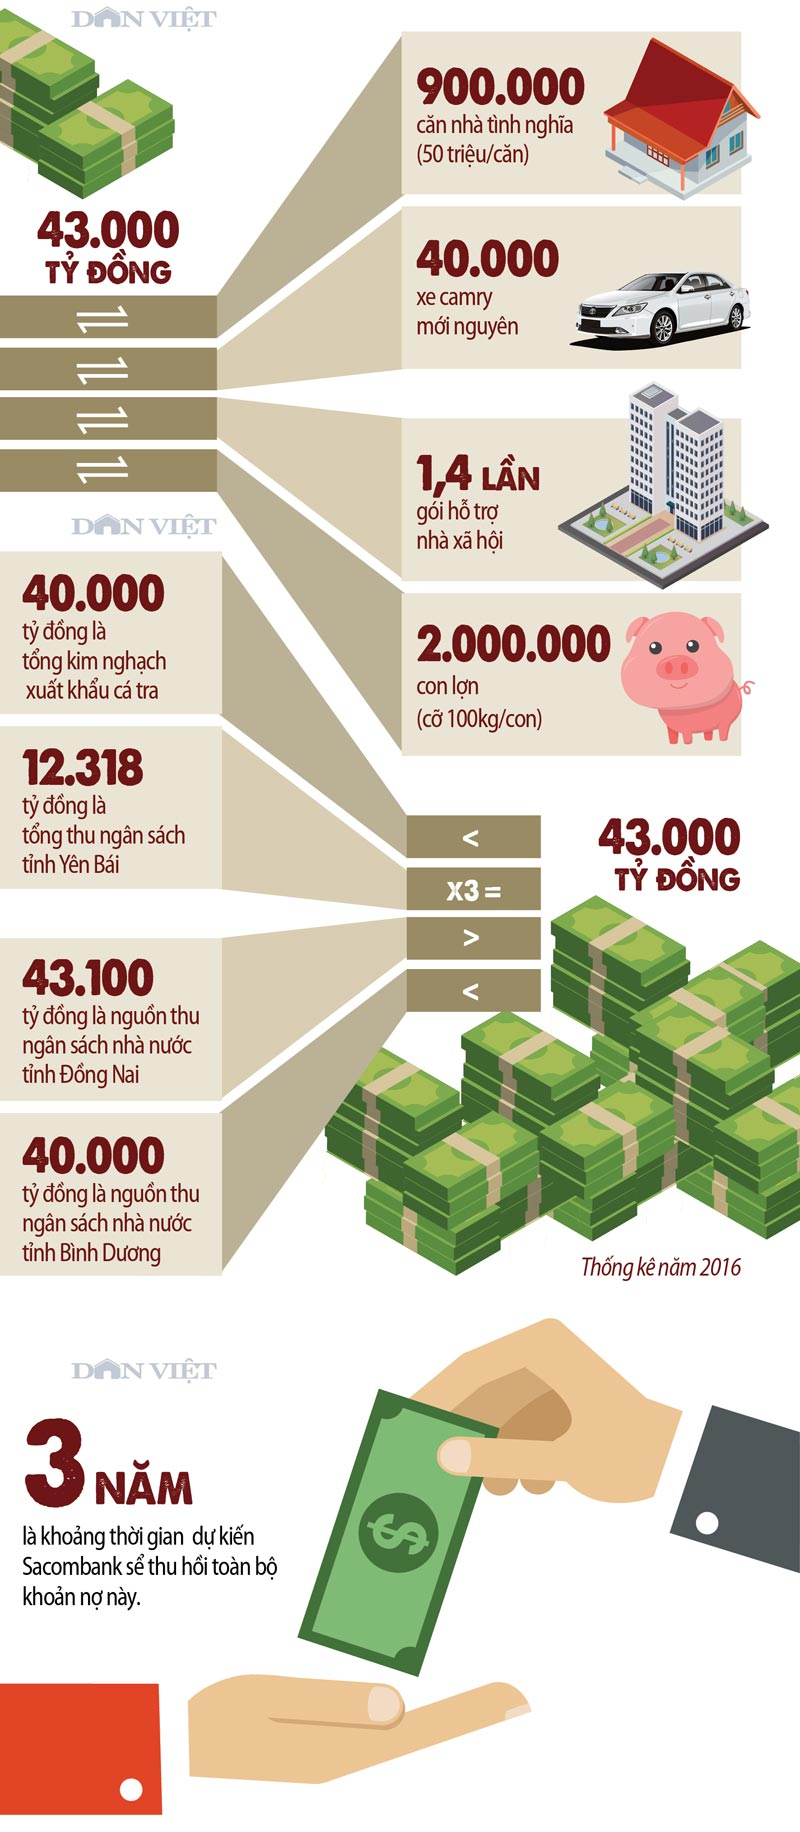 infographic: tram be no tuong duong 900.000 can nha tinh nghia! hinh anh 2